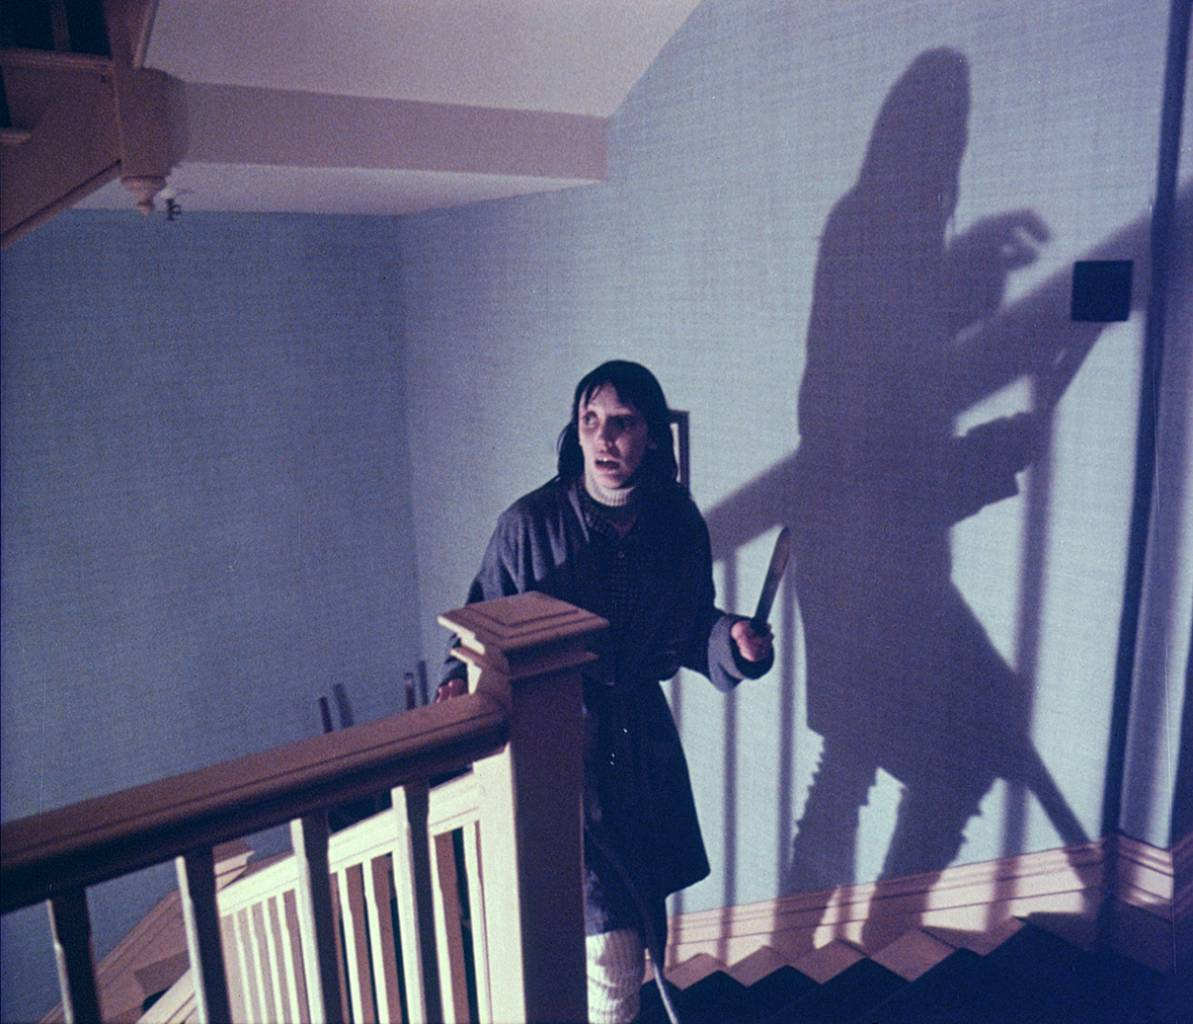 Stanley Kubrick The Shining behind the scenes